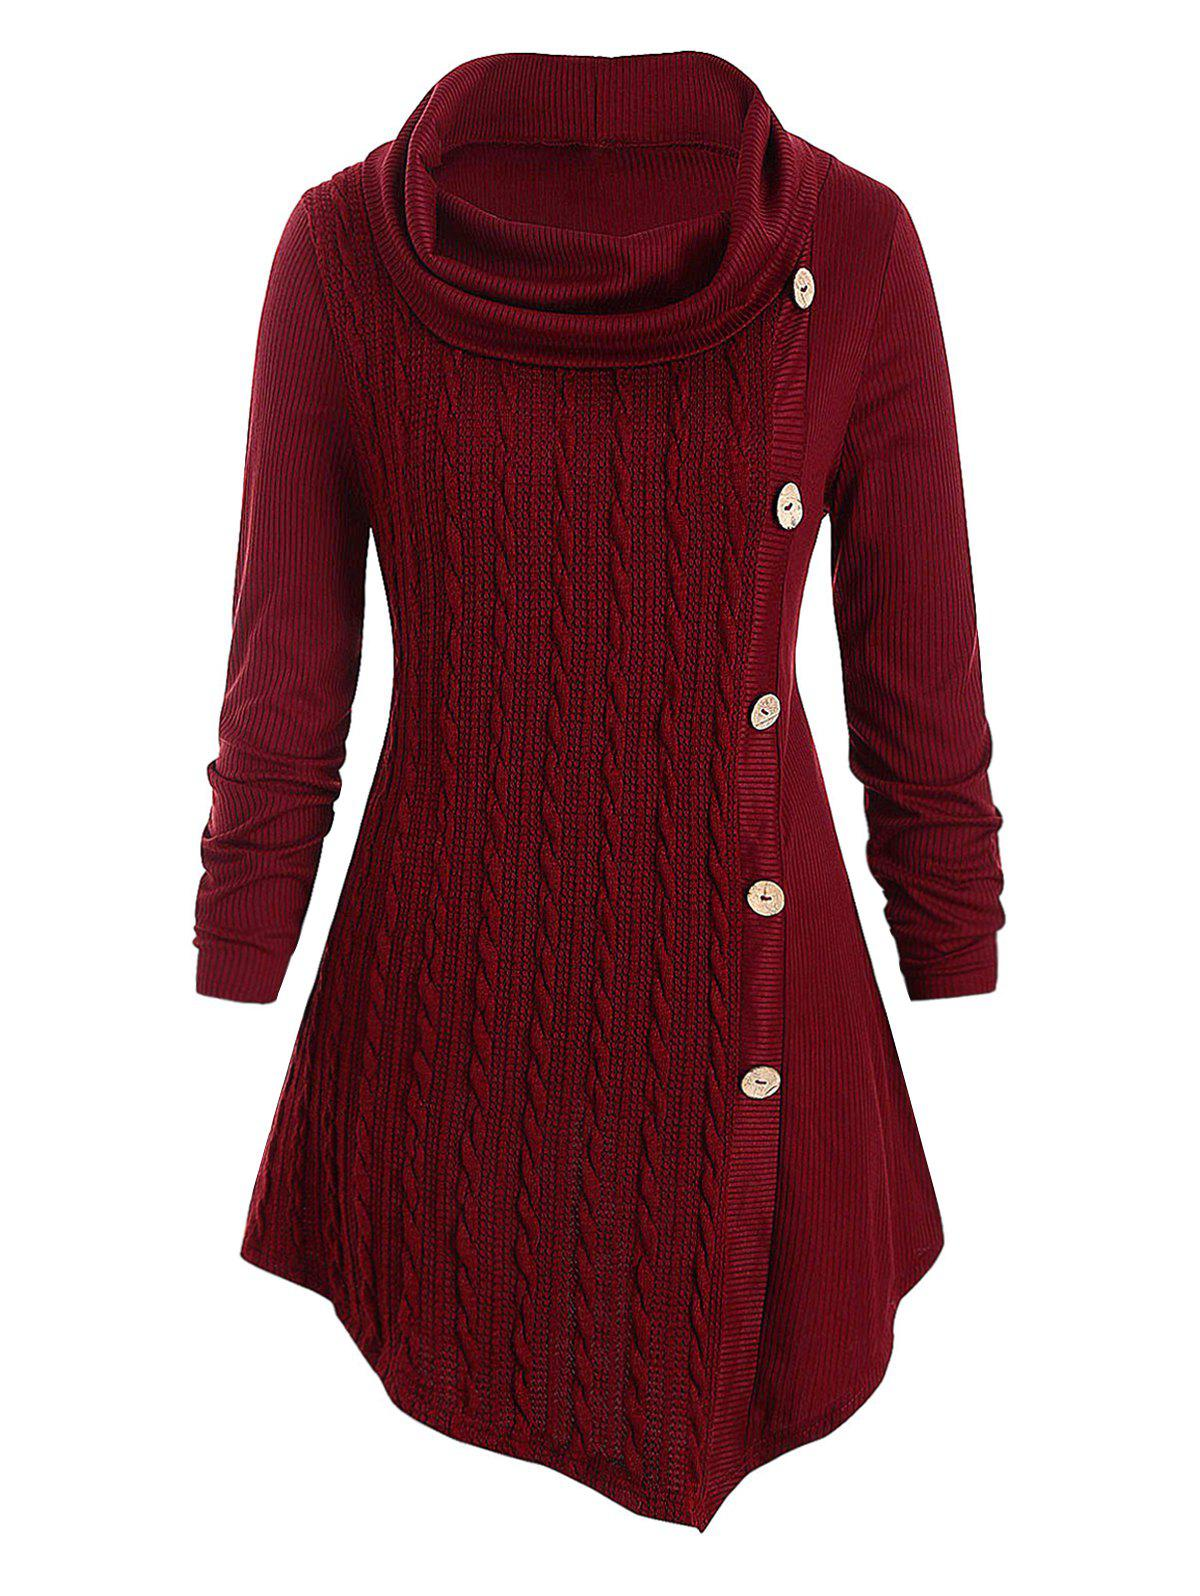 Plus Size Cowl Neck Cable Knit Top - RED WINE L